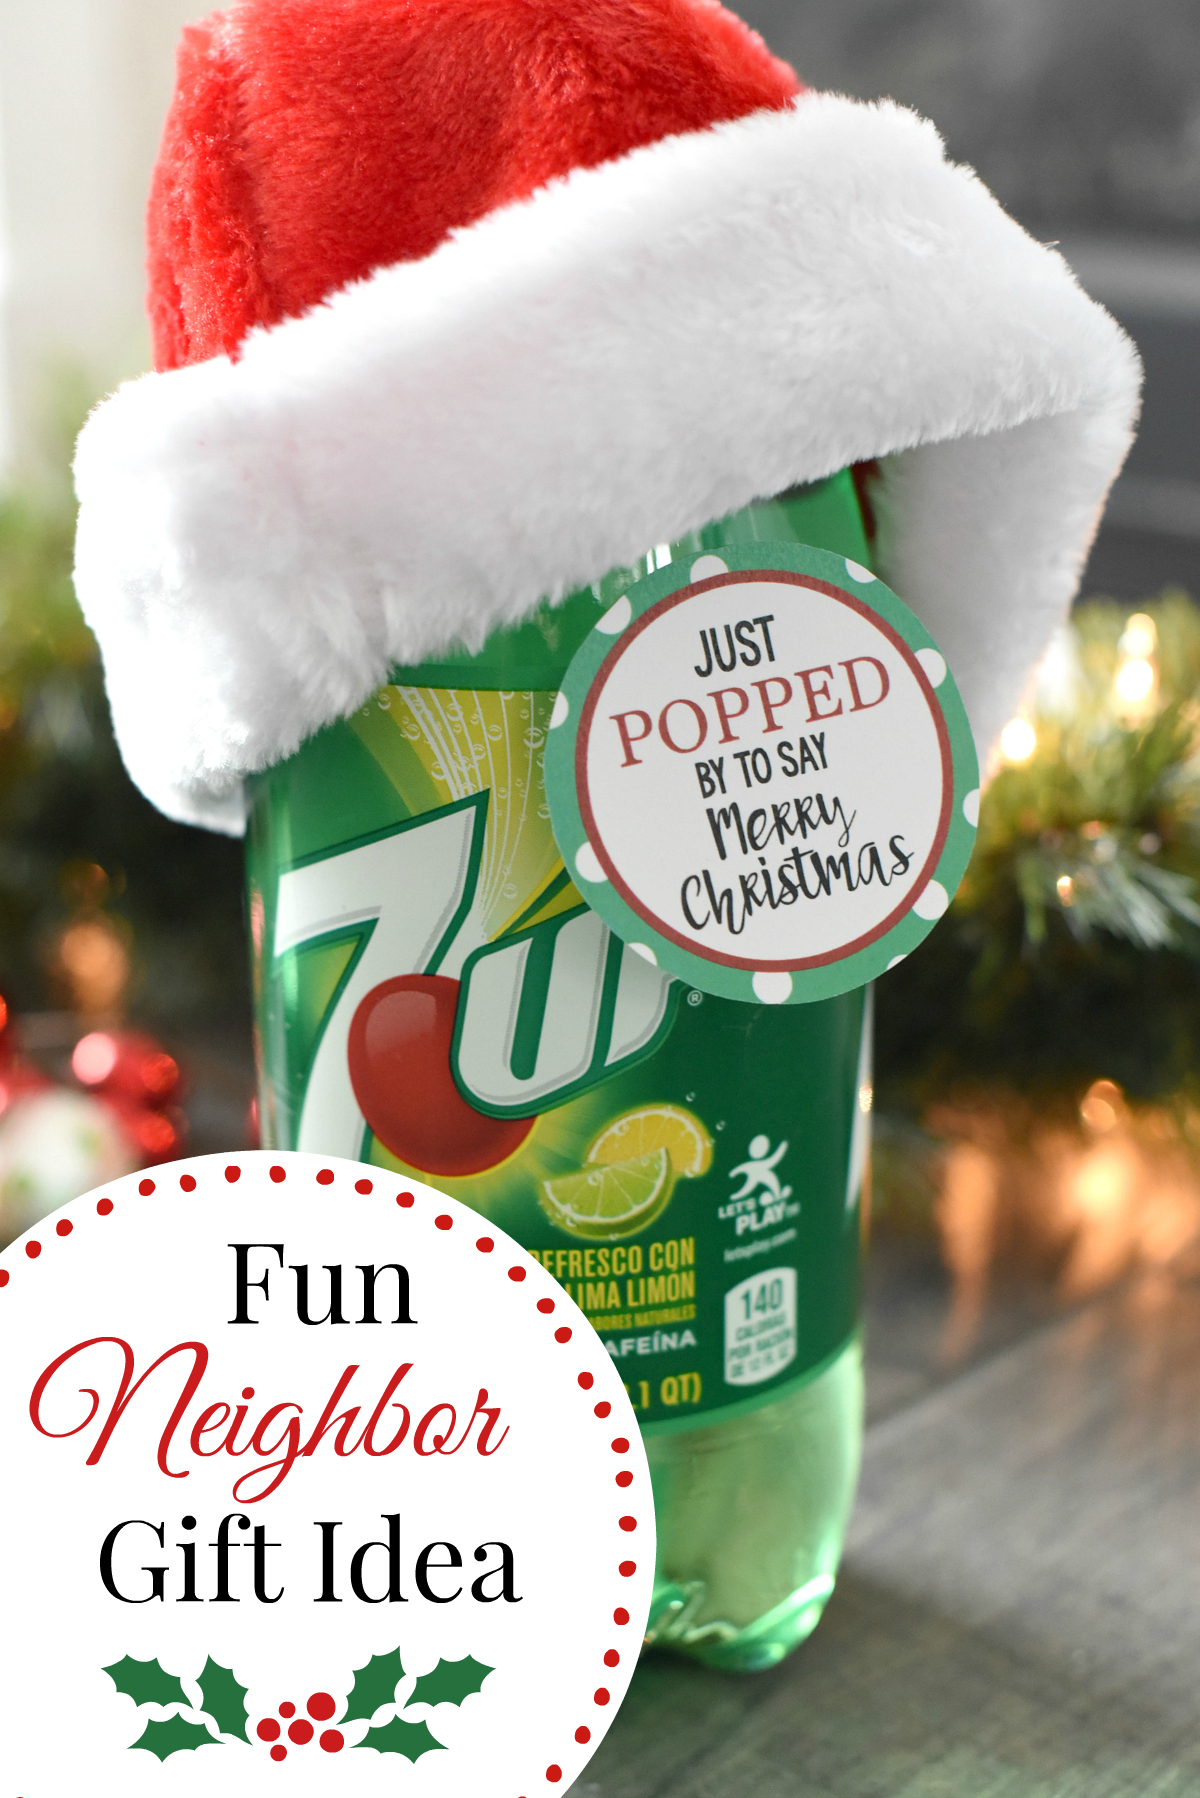 Just POPPED By to say Merry Christmas-A fun and simple Christmas Neighbor Gift Idea. All you need is a soda and a tag! #christmasgifts #christmasgiftideas #neighborgifts